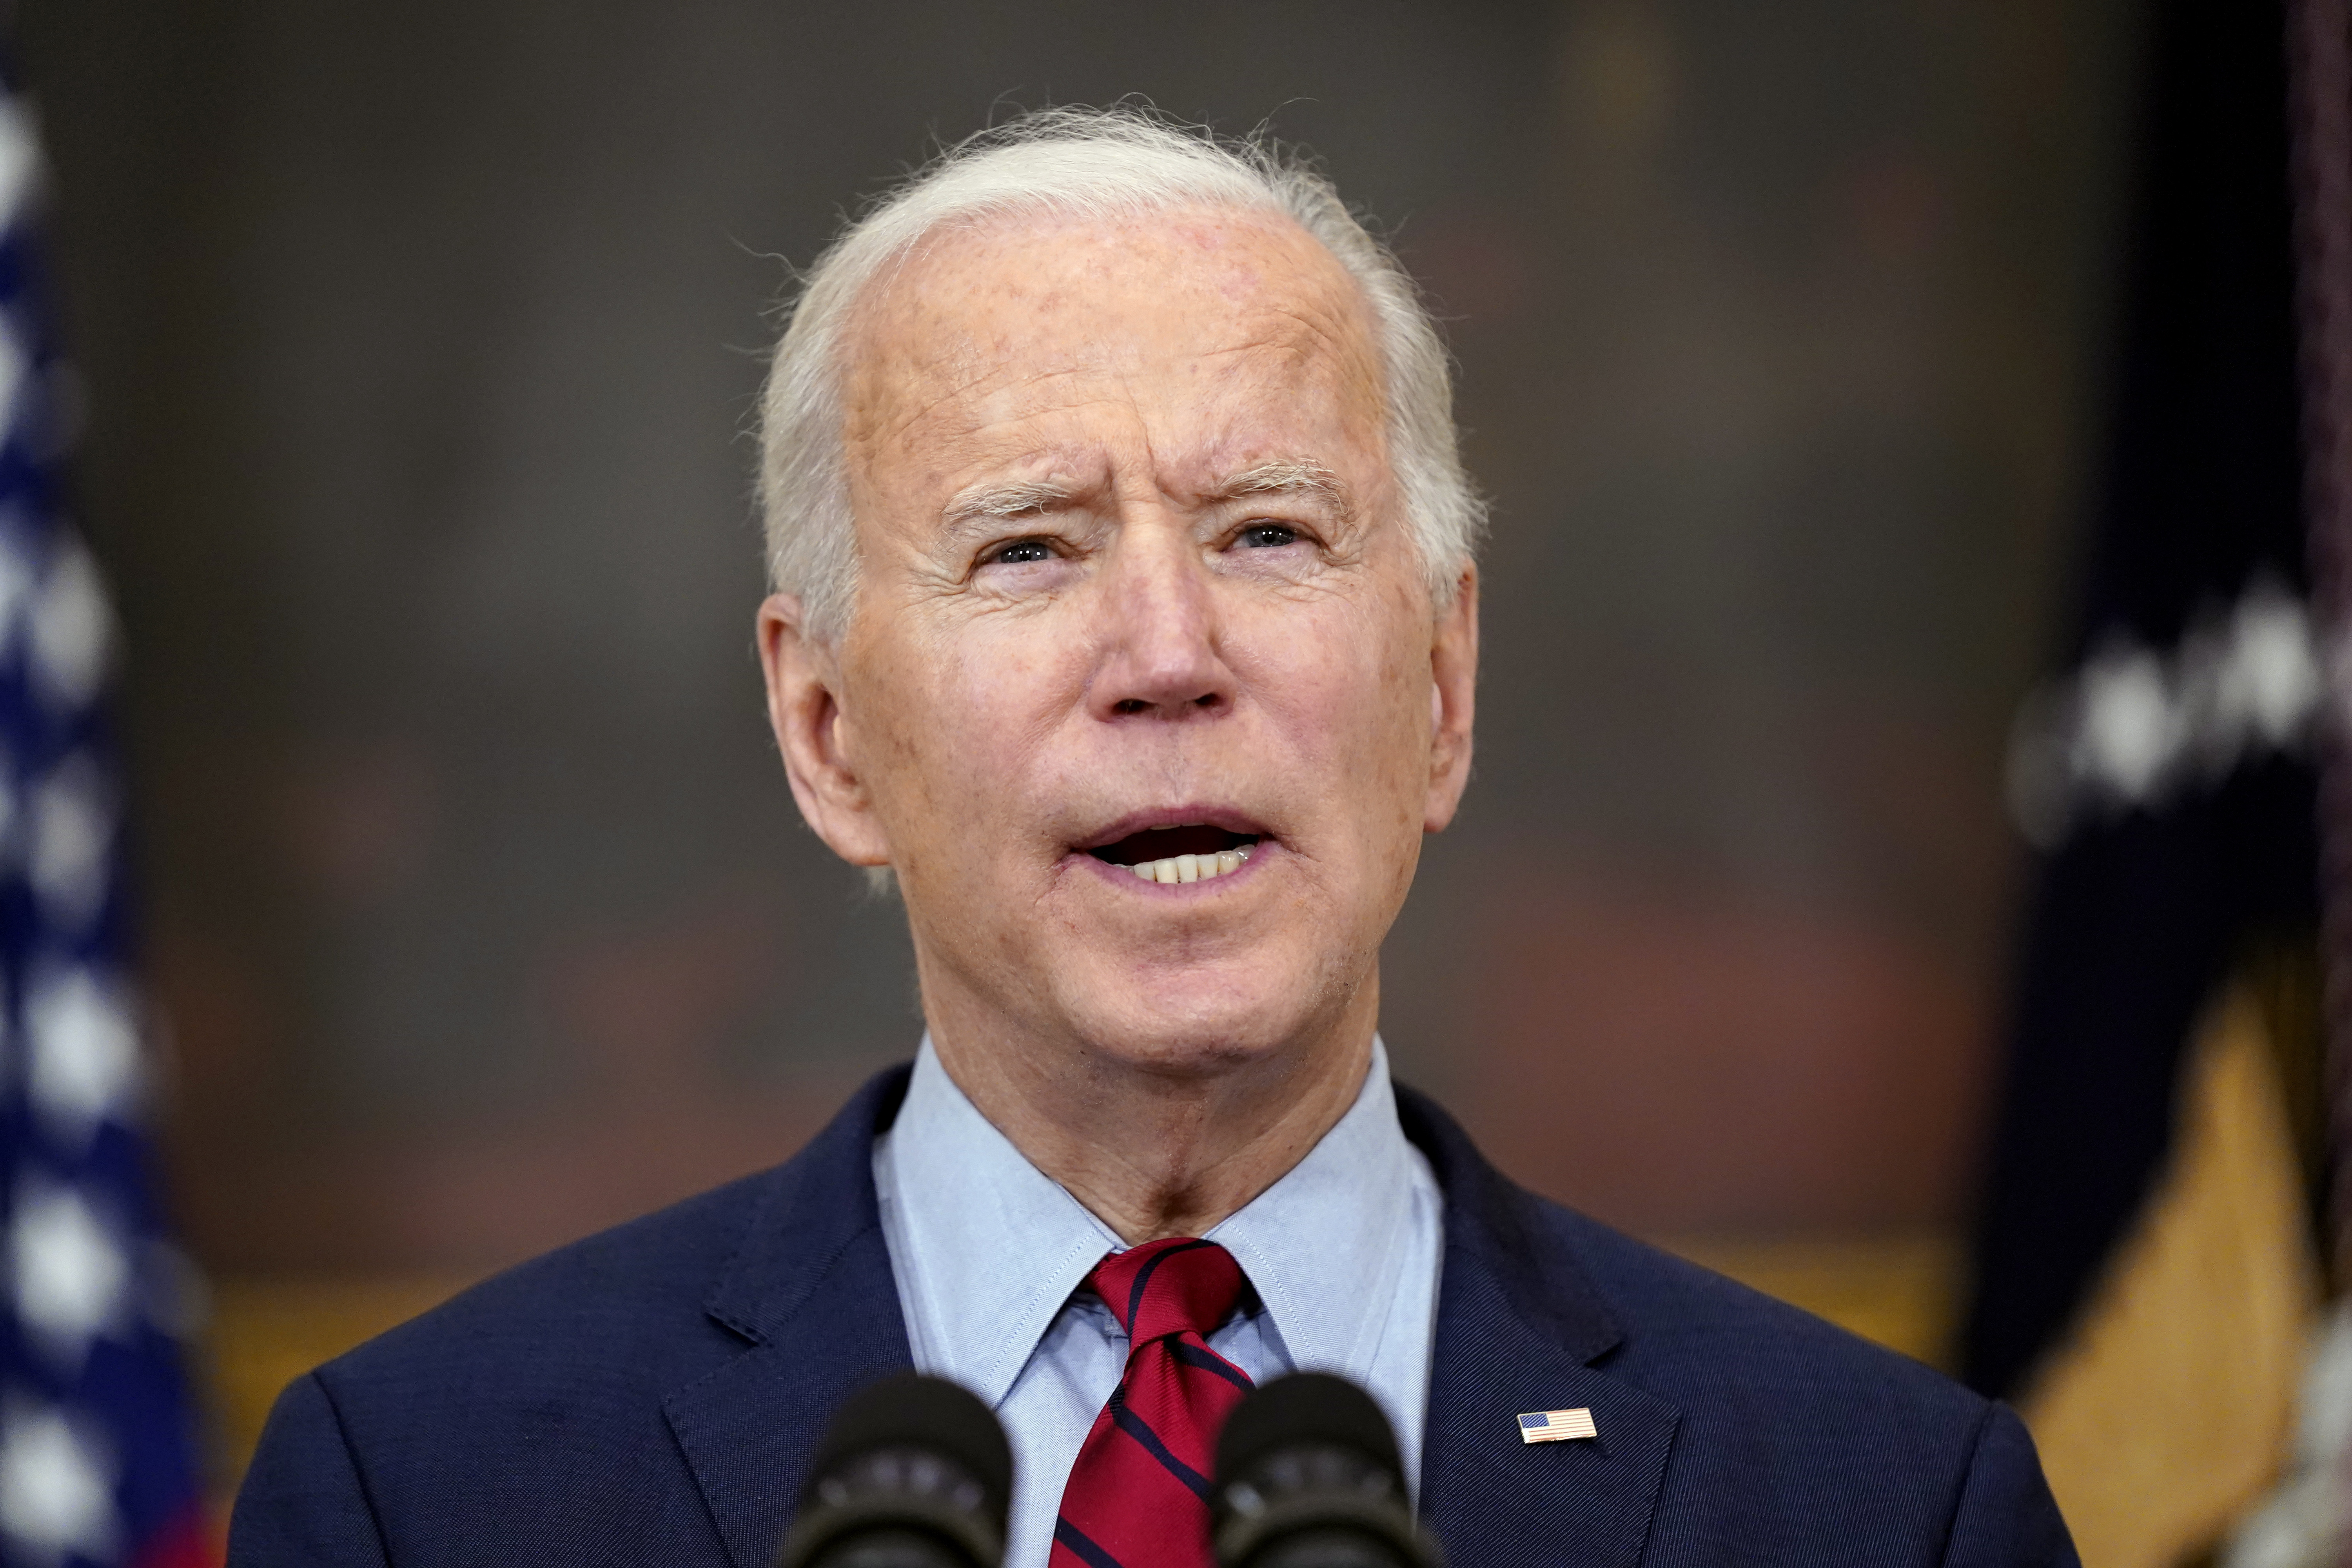 In this March 23, 2021, file photo, President Joe Biden speaks about the shooting in Boulder, Colo., in the State Dining Room of the White House in Washington.